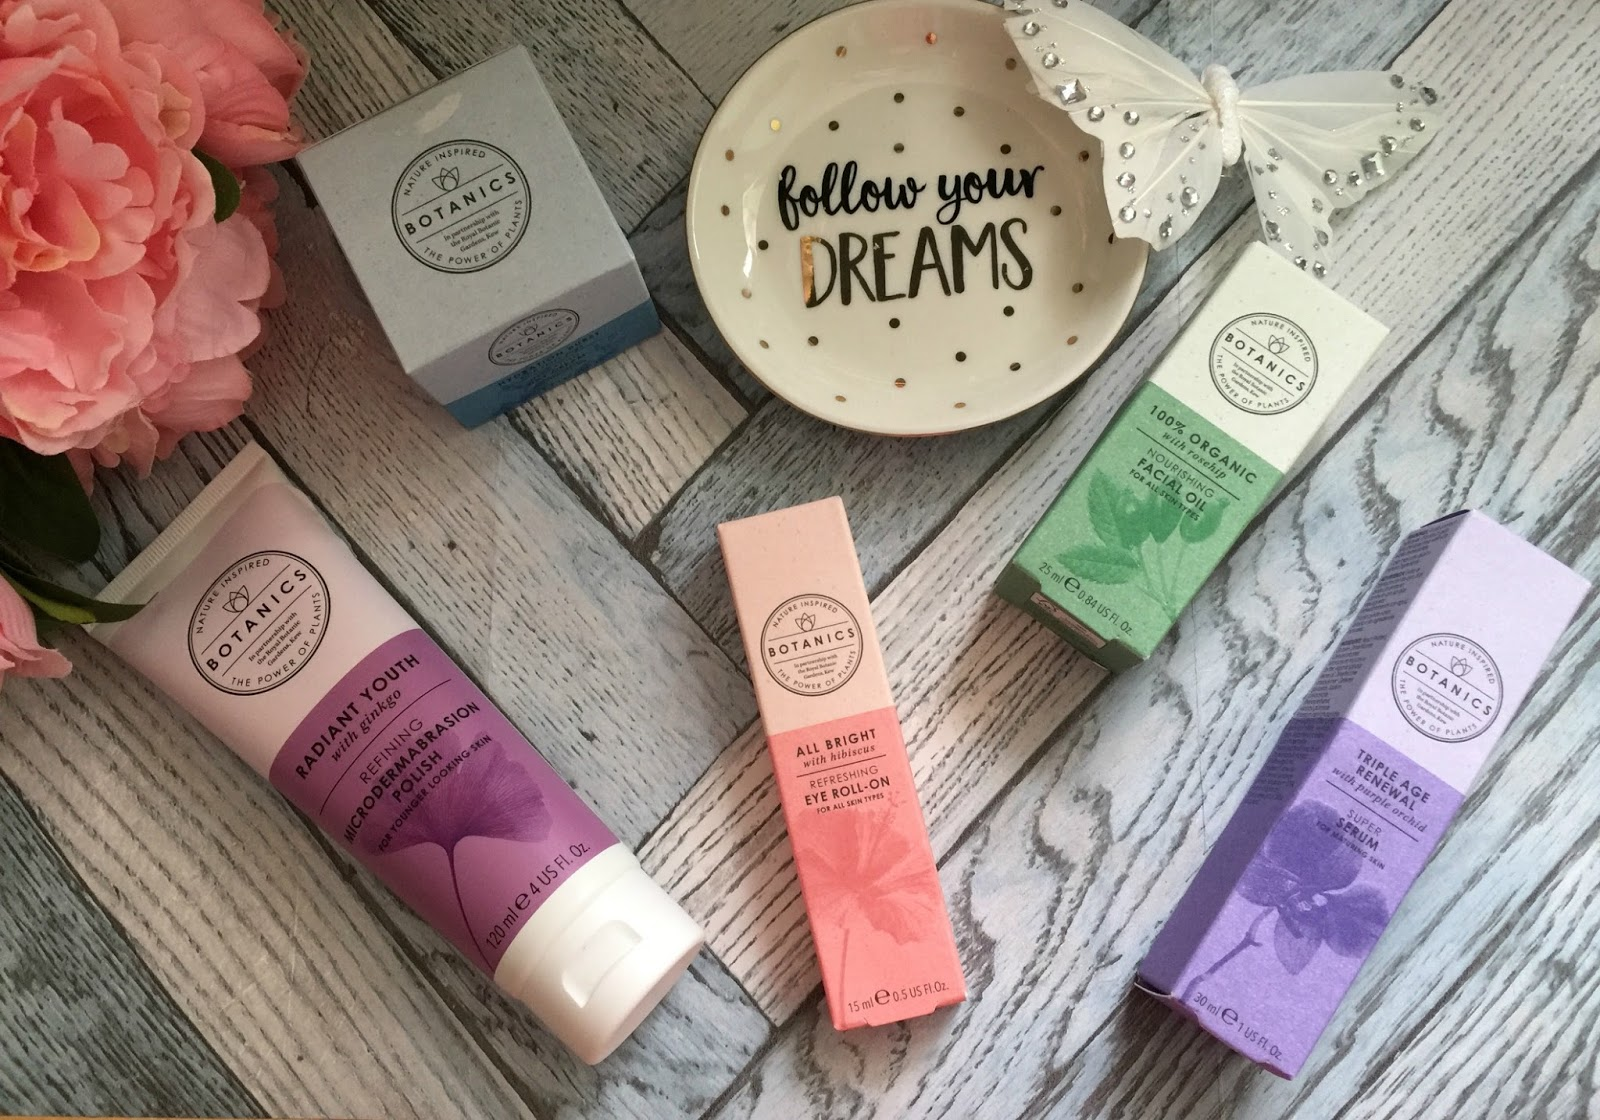 botanics release their new collection of natural skin care superheroes